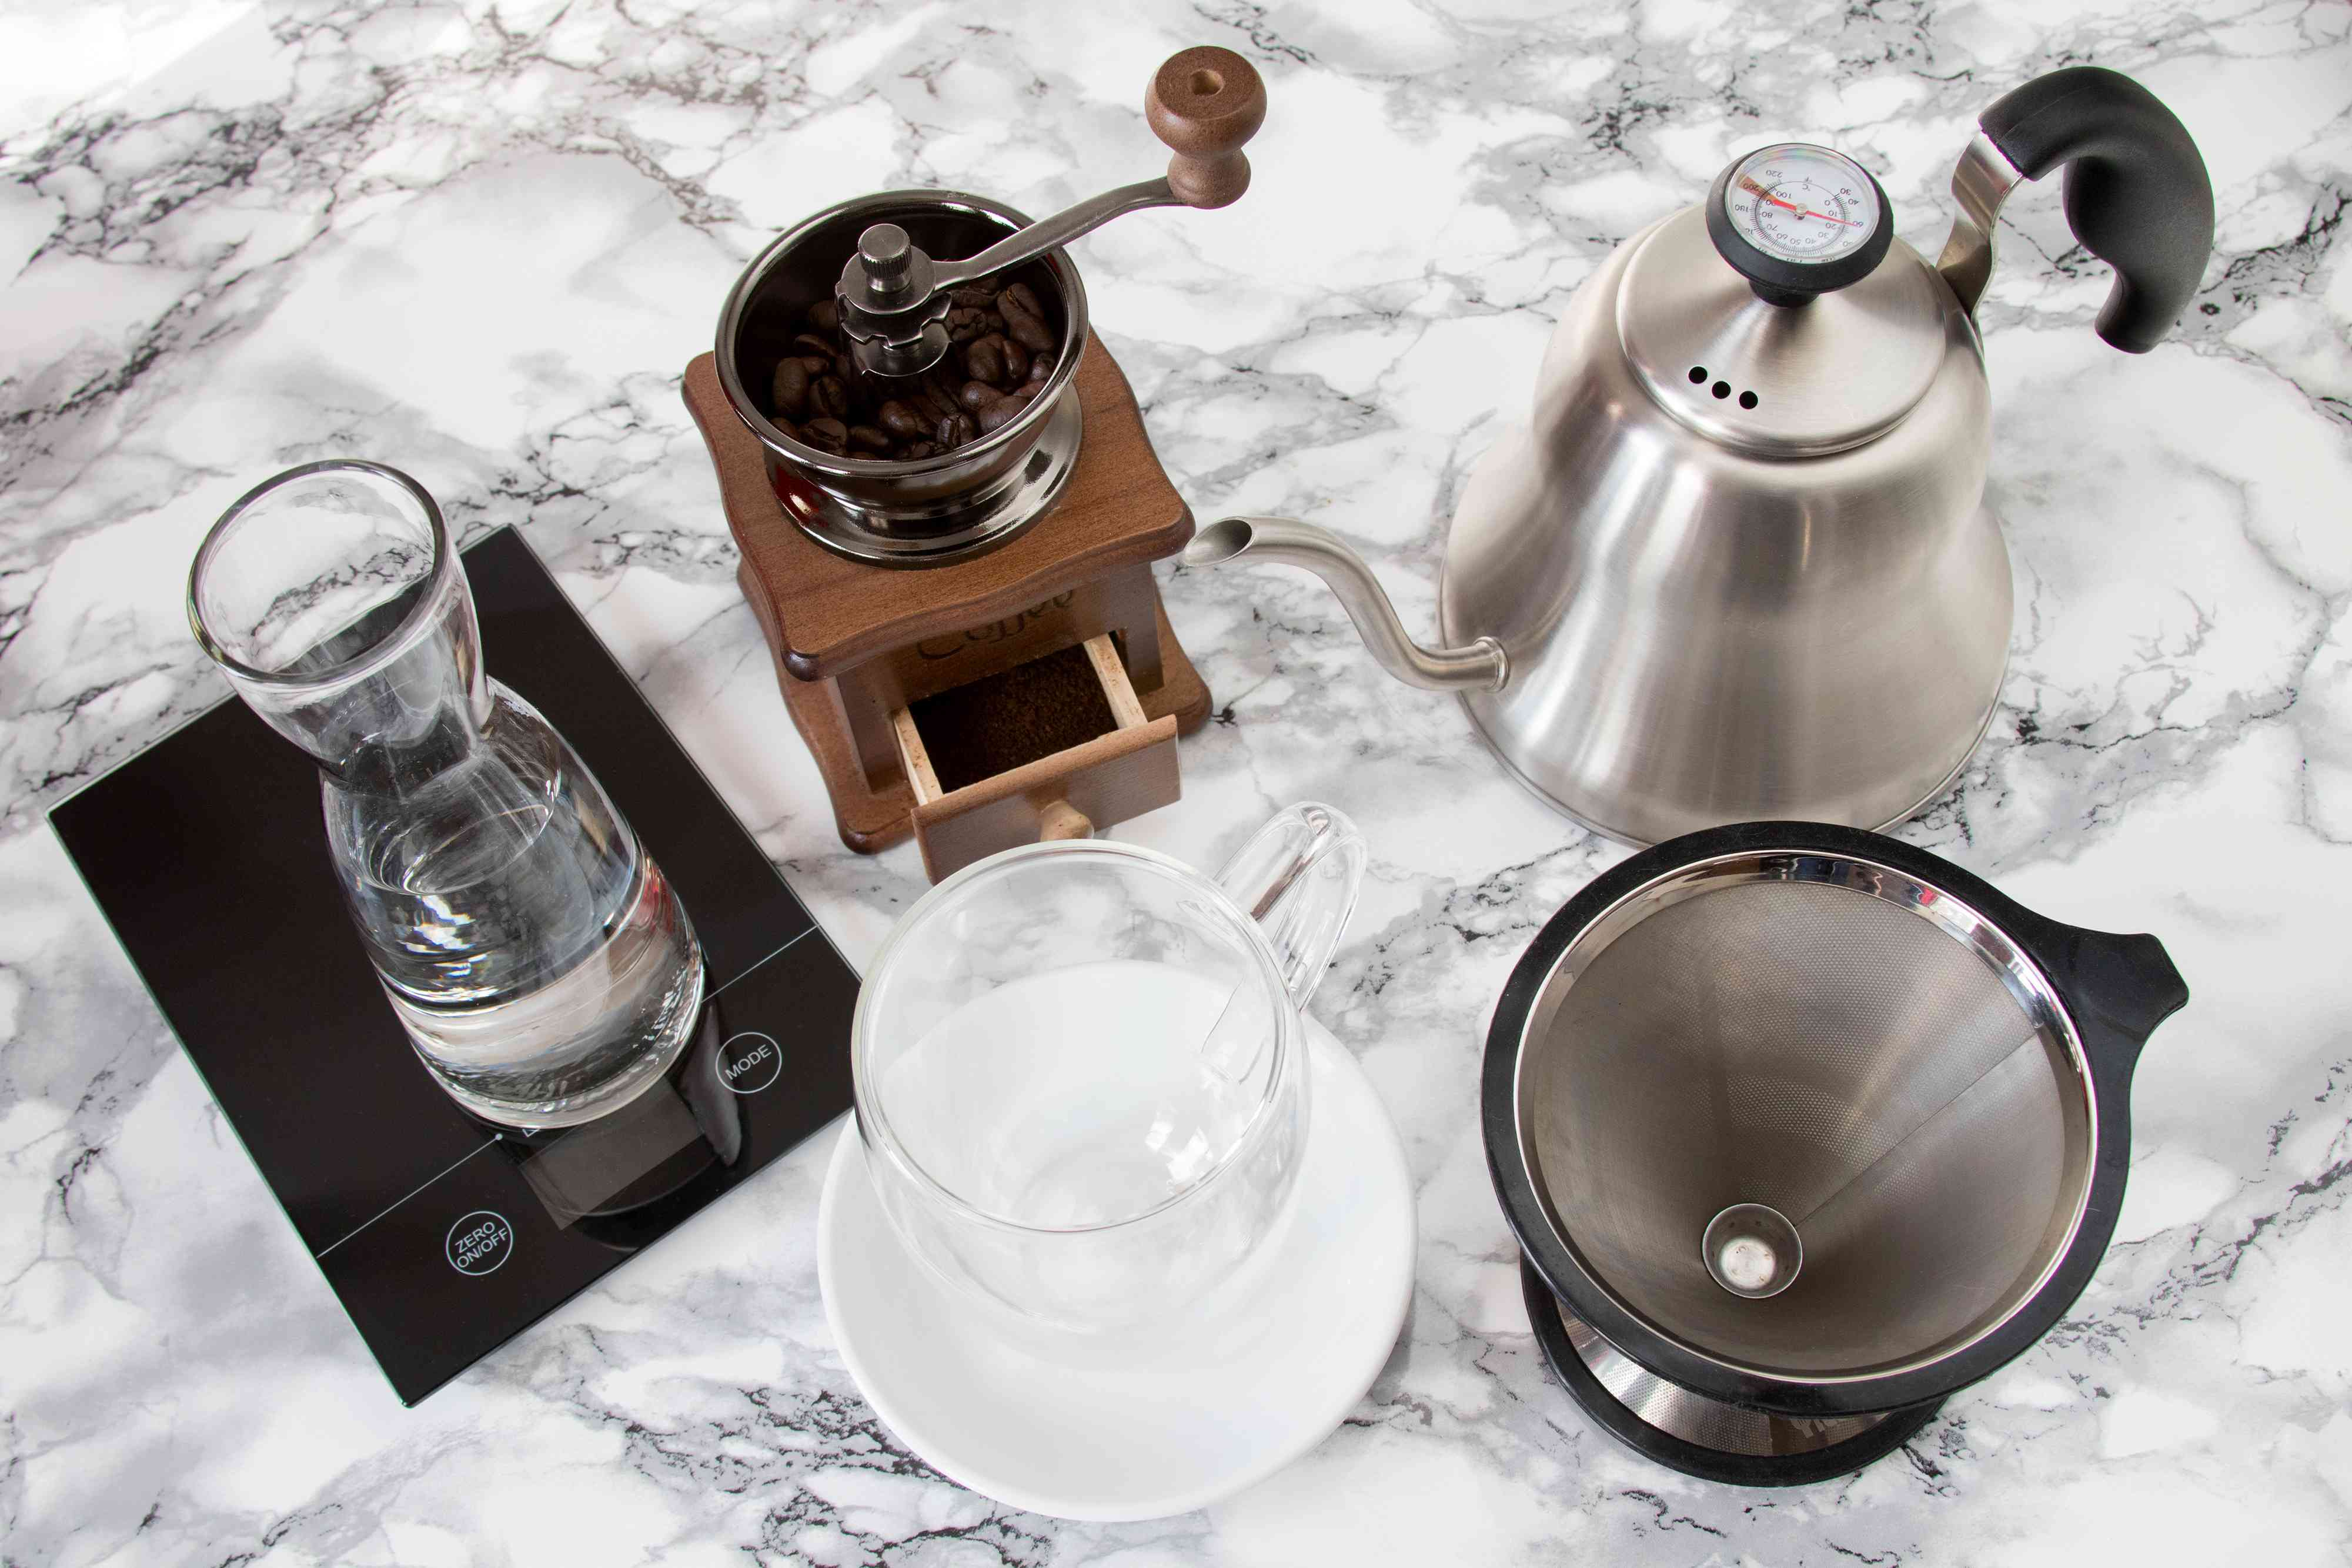 Ingredients and Tools to Brew Pour-Over Coffee